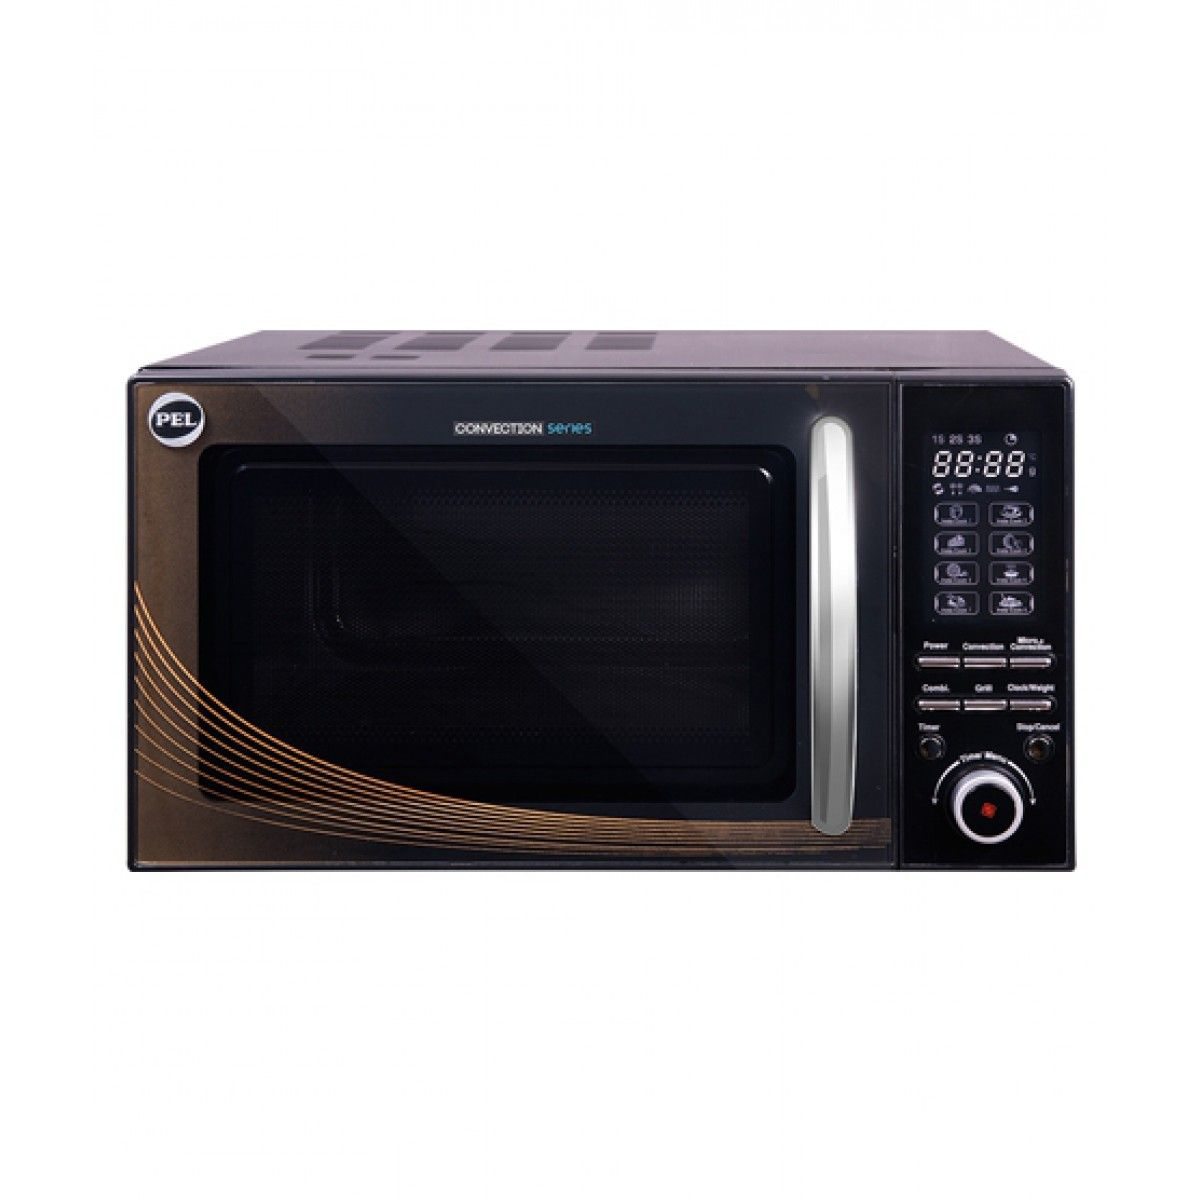 Pel Convection Pmo 25l Microwave Oven Price In Pakistan Oven